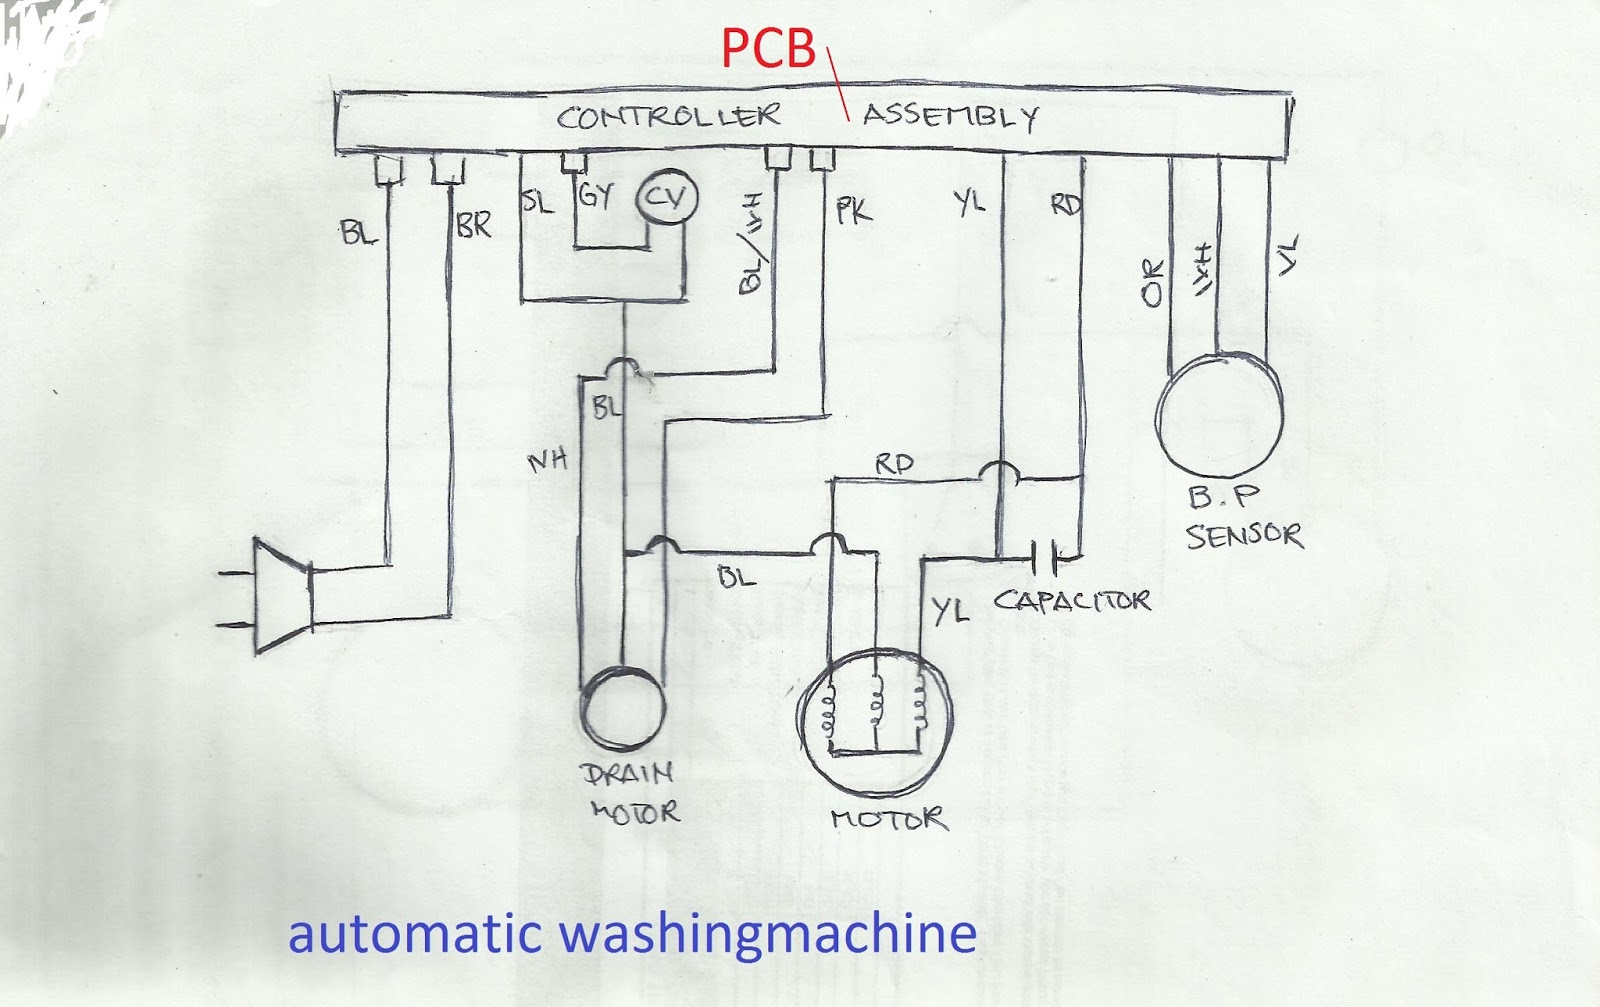 washine refrigeration and air conditioning repair wiring diagram of wiring diagram for air conditioner at eliteediting.co